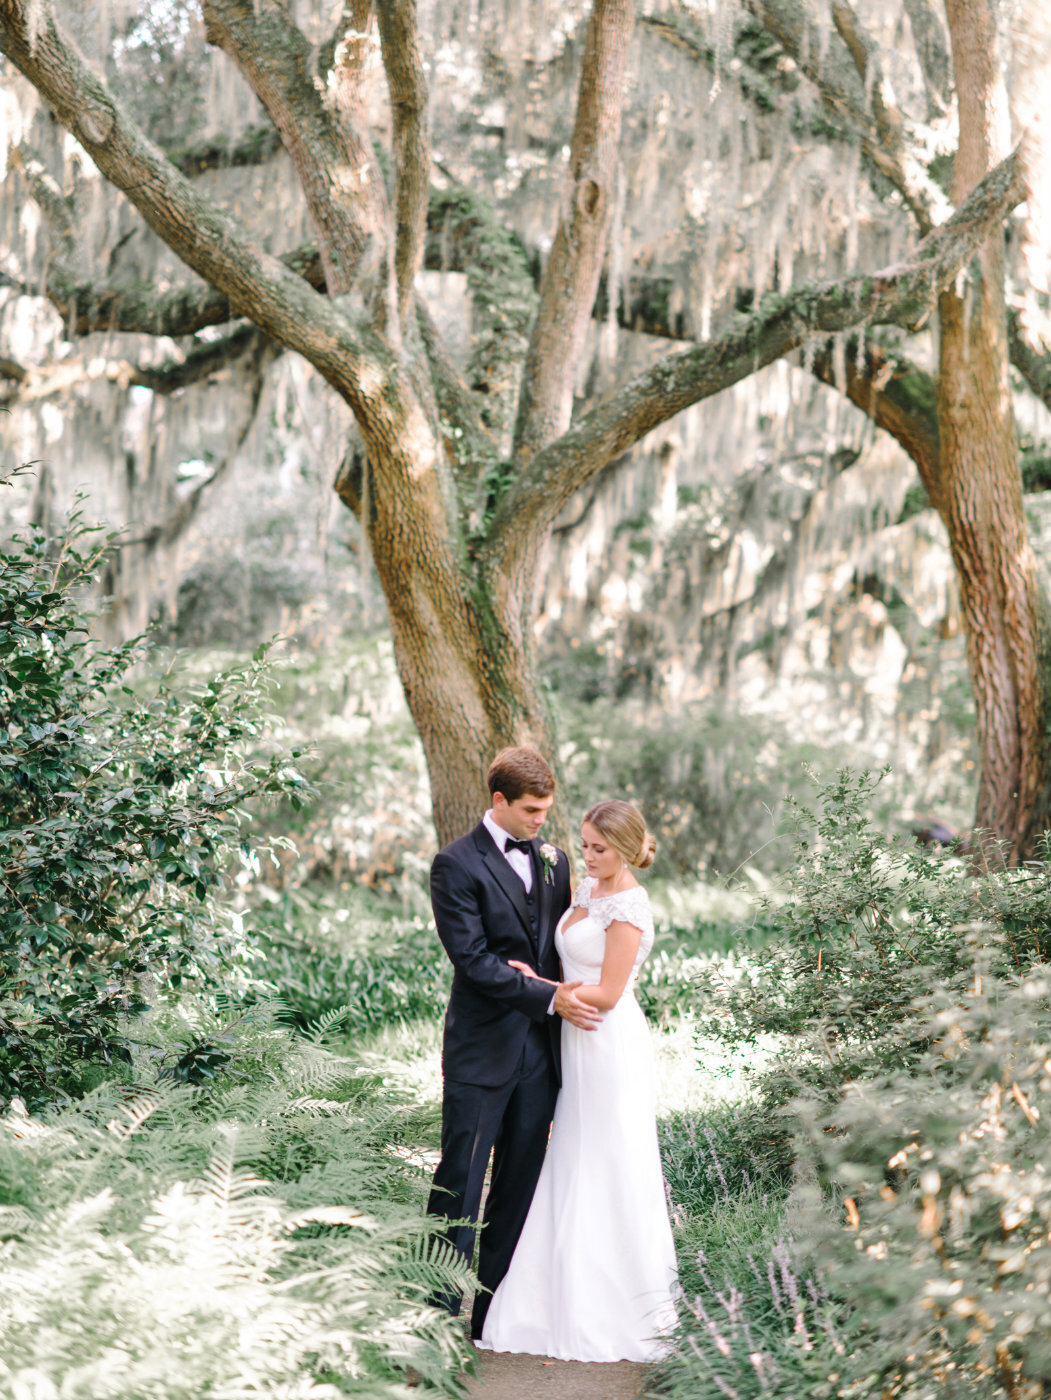 Brook Green Gardens Wedding Photography | Murrells Inlet | Pawleys Island Wedding Pictures and Ideas-24